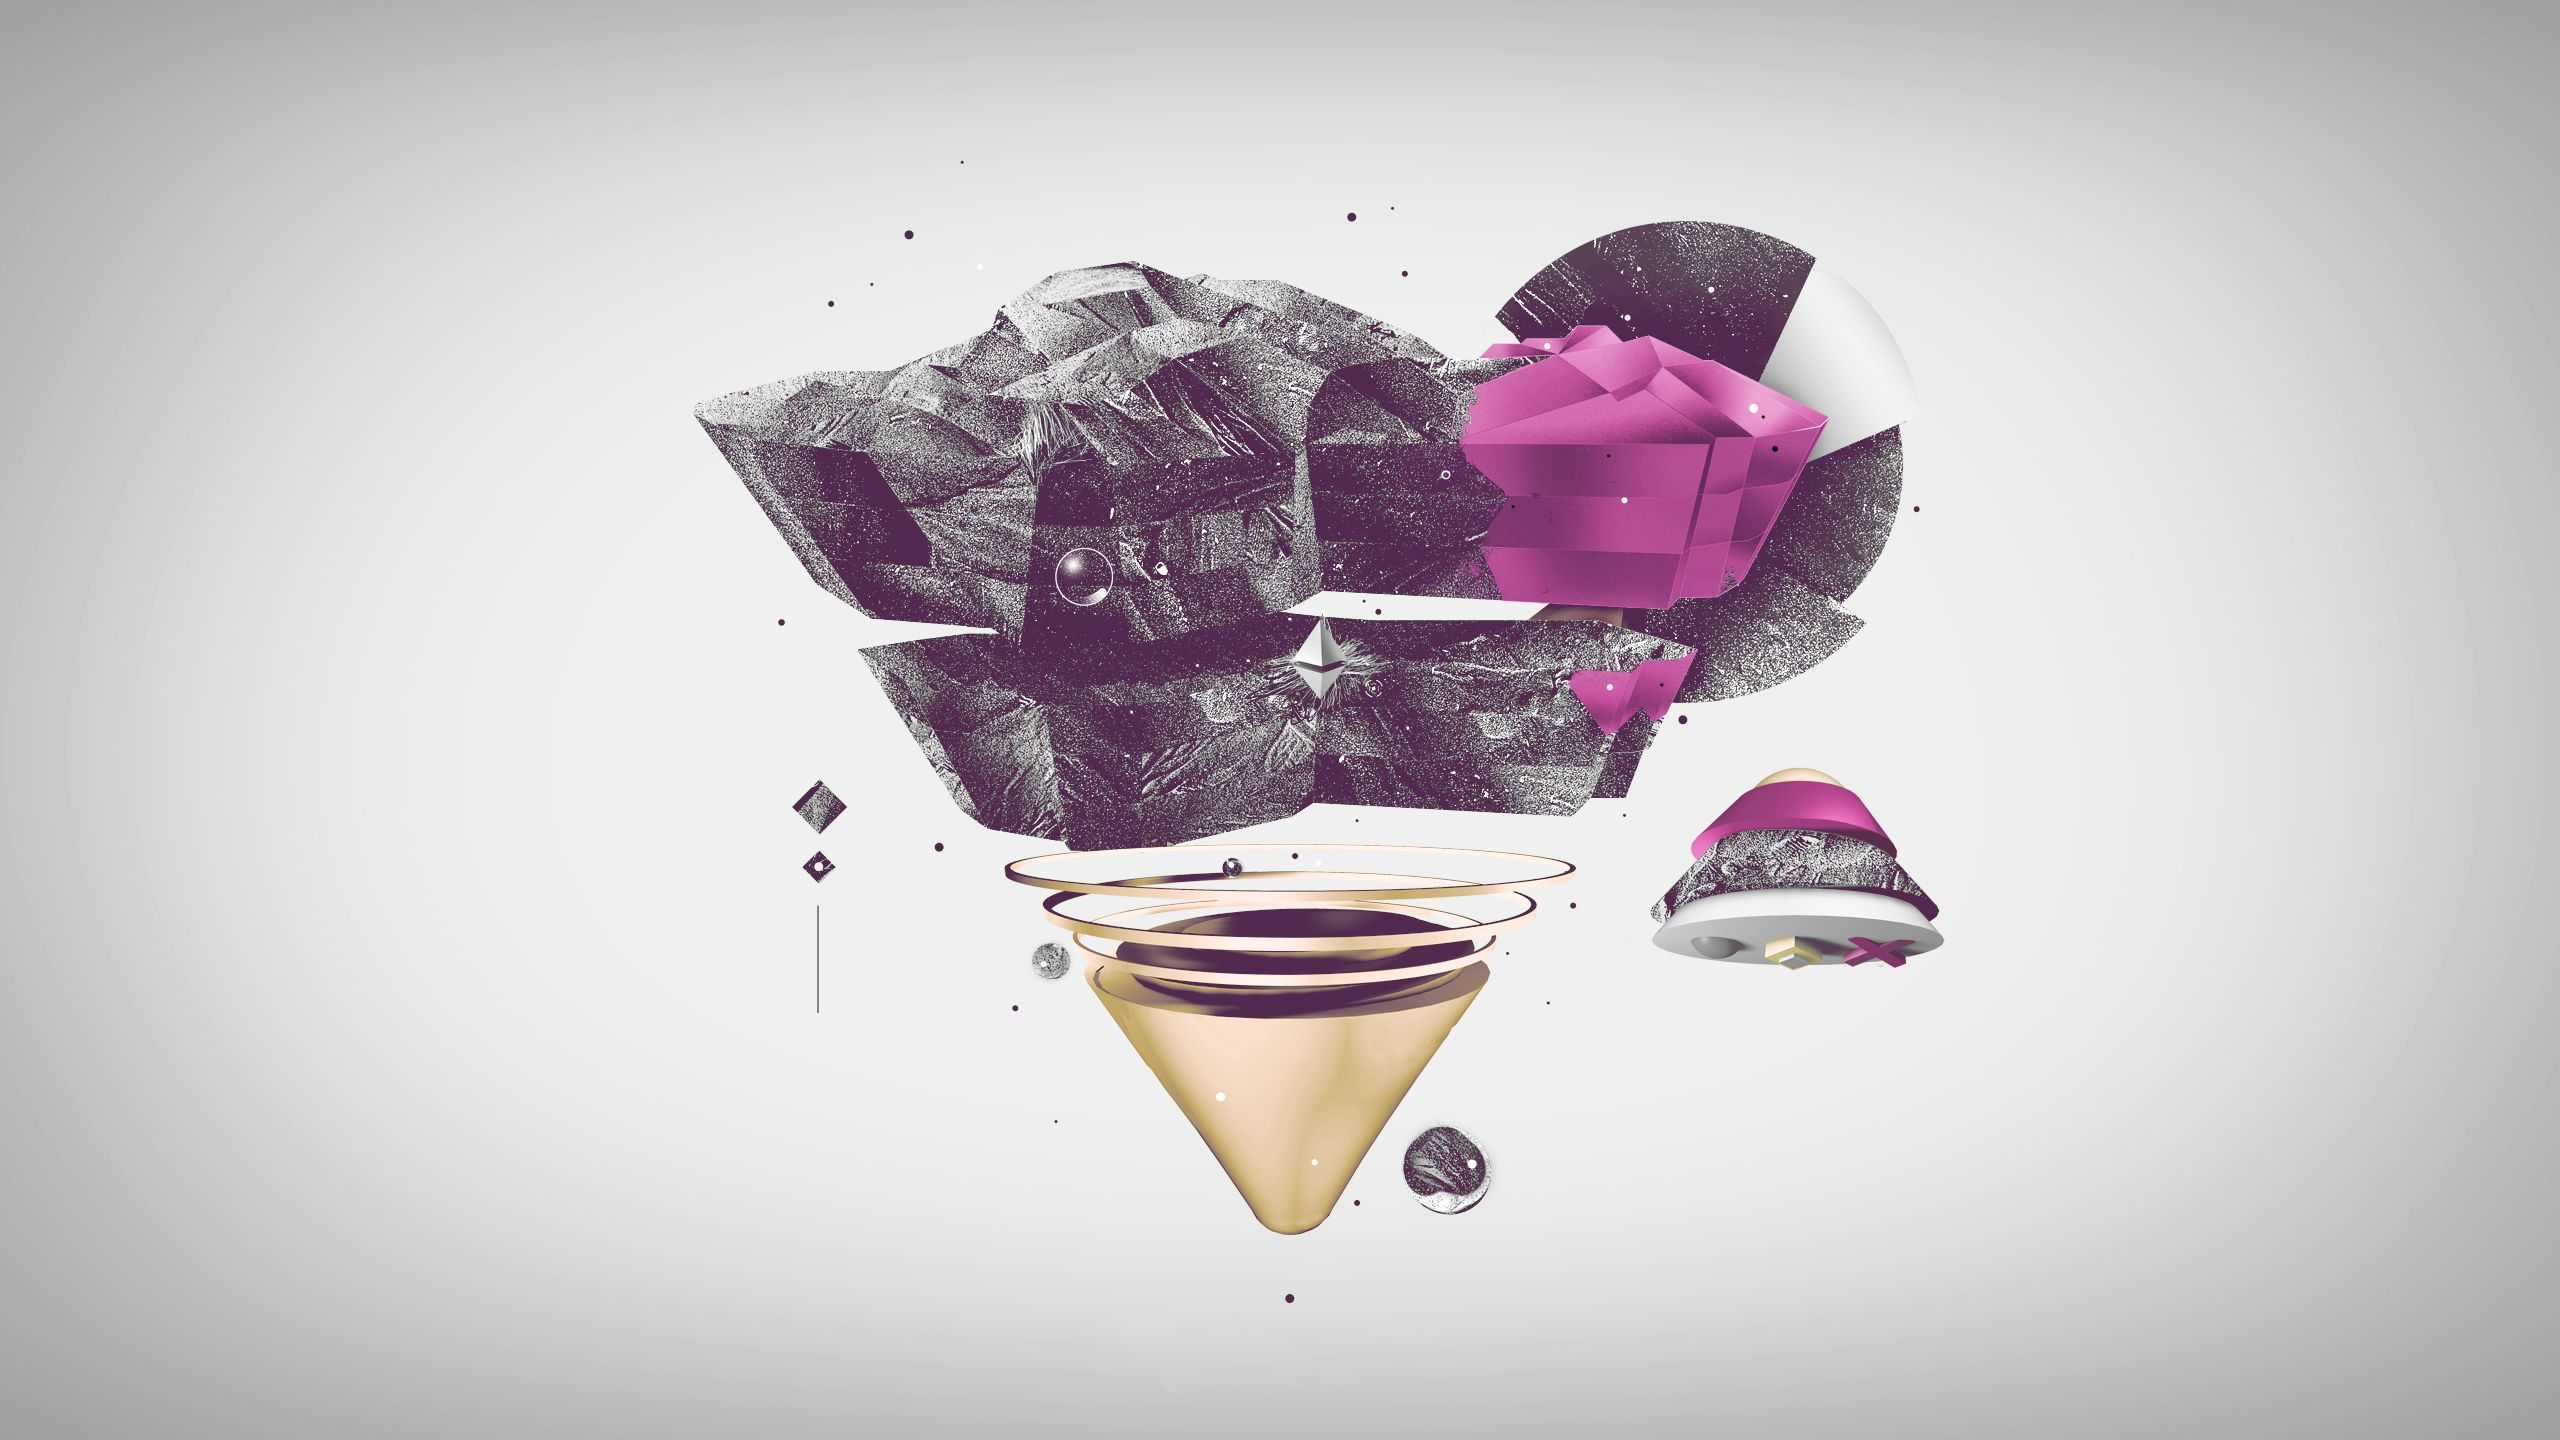 Wallpaper Triangle Pyramid Black Pink | Design | Pinterest ...